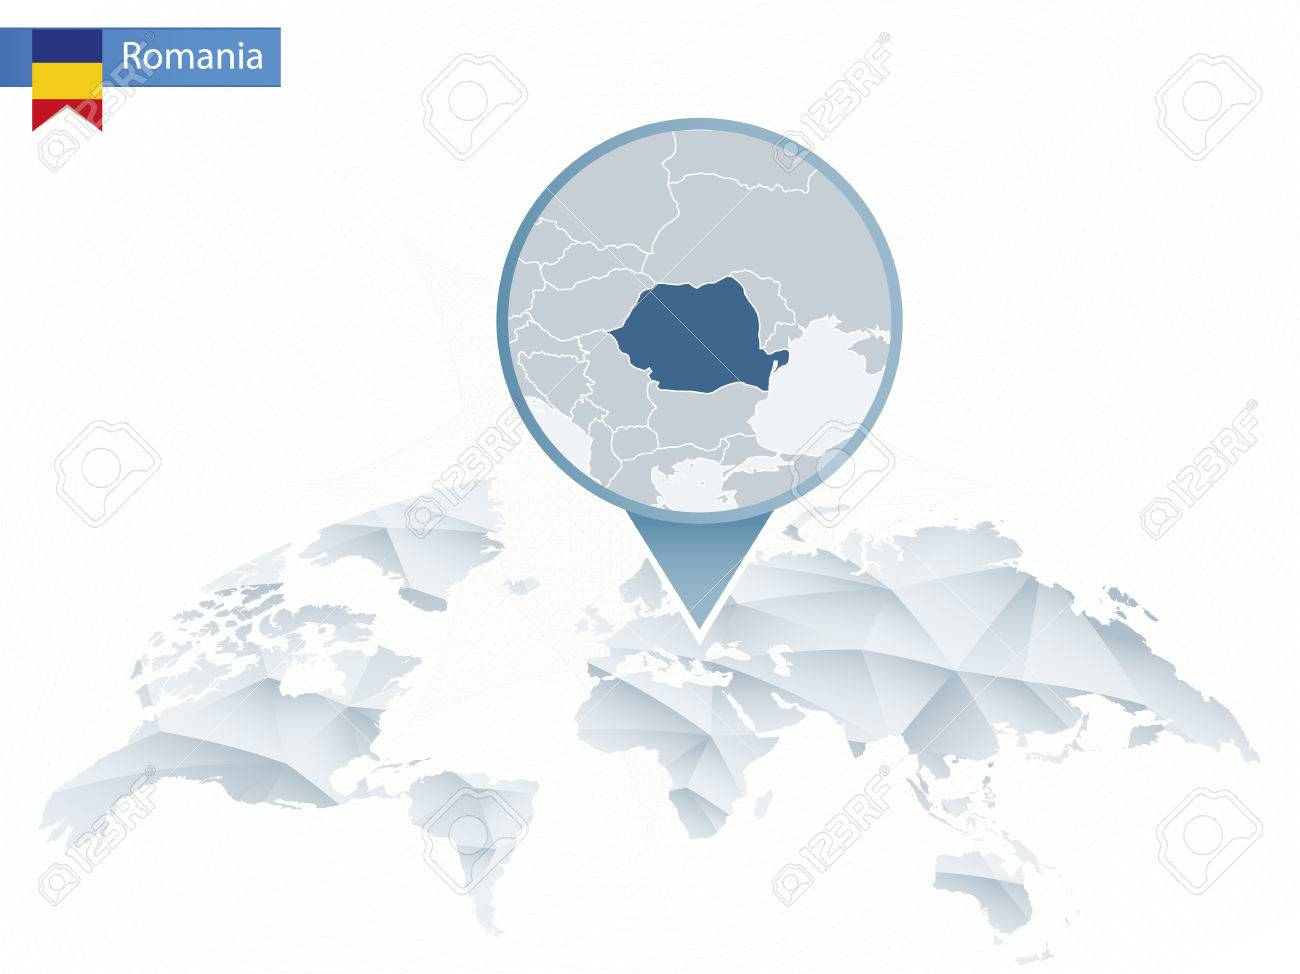 Abstract Rounded World Map With Pinned Detailed Romania Map